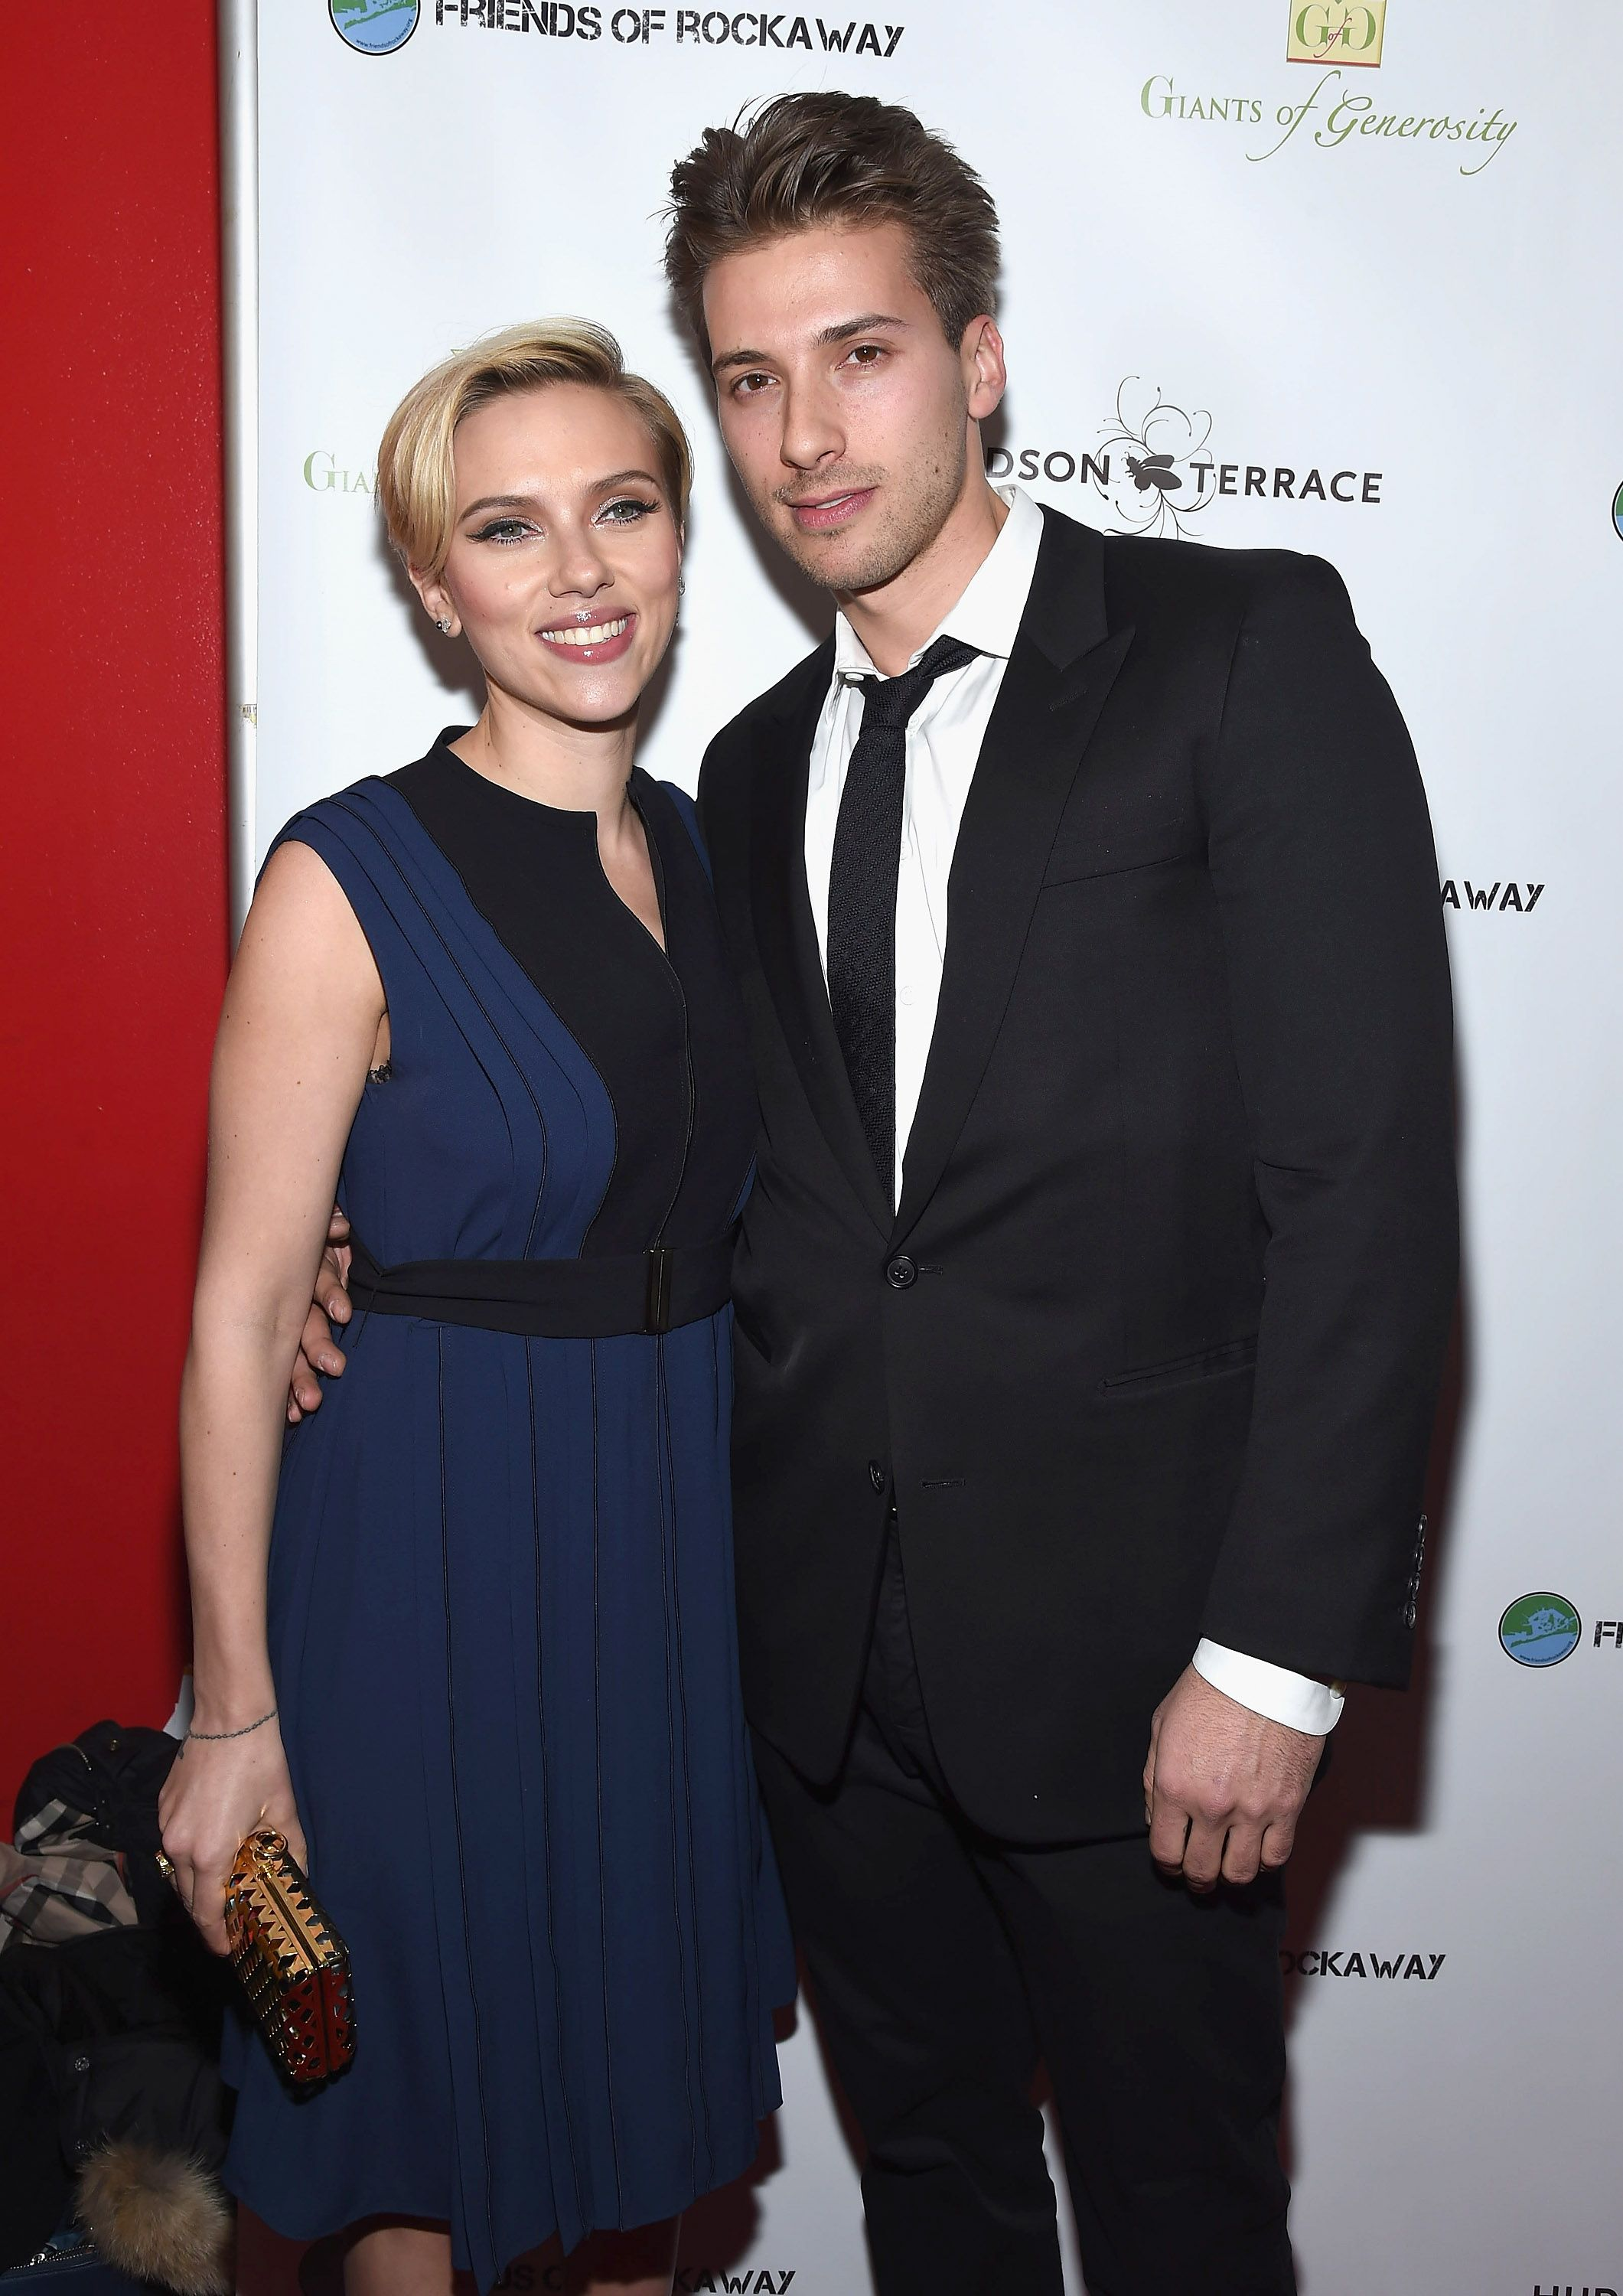 Scarlett Johansson and her twin brother